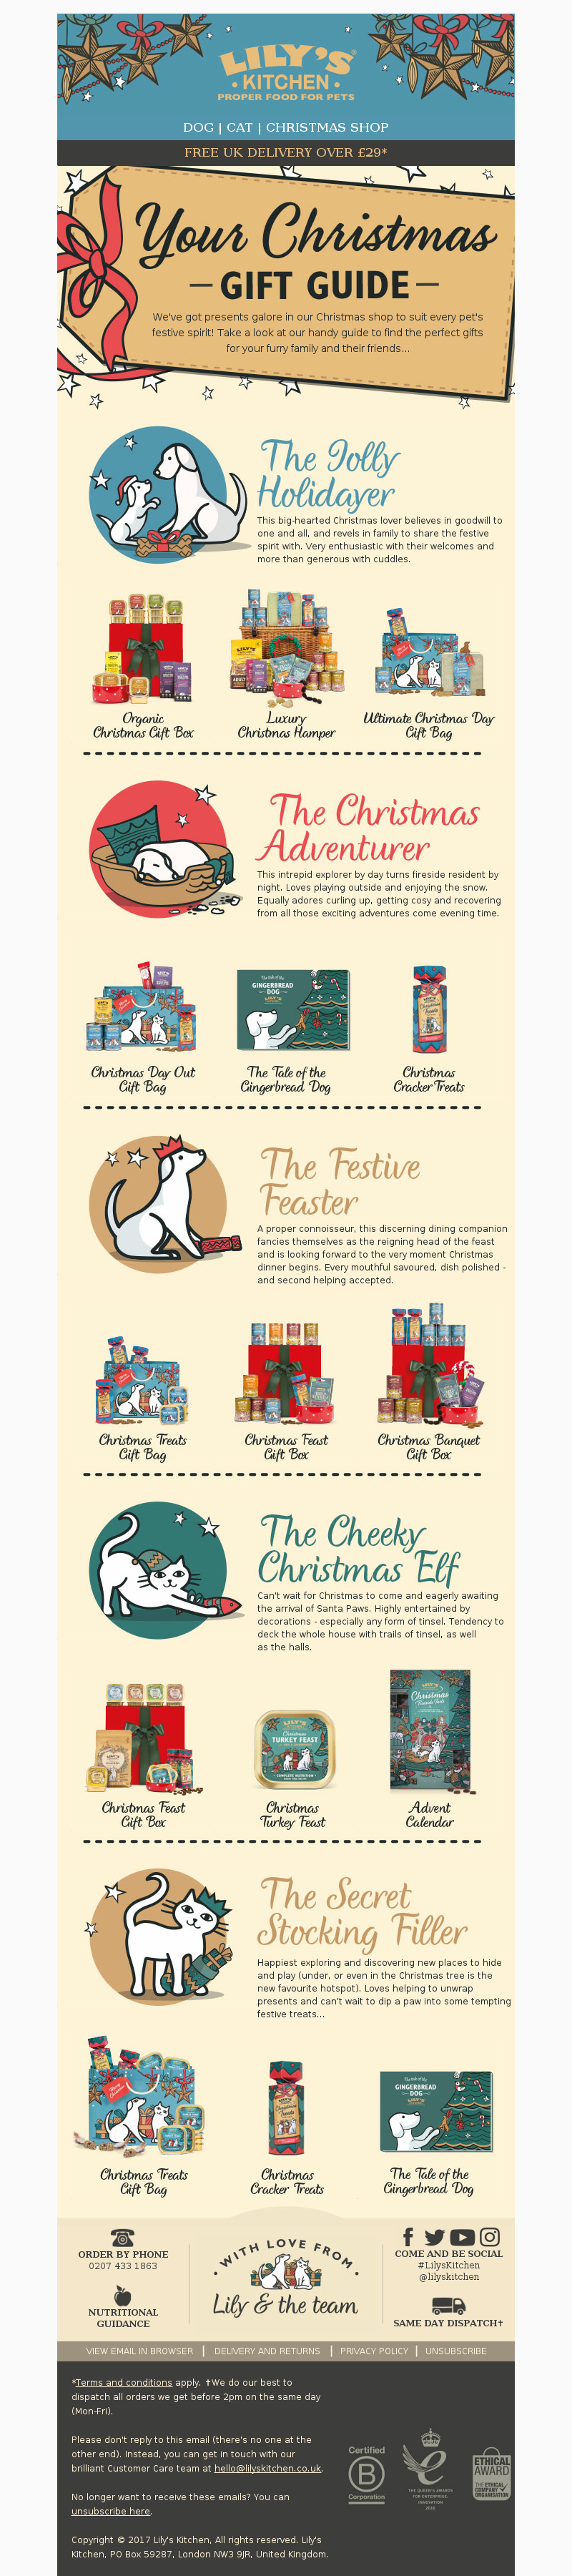 Lily's Kitchen (UK) - 🎁 The perfect gift for every pet 🎁